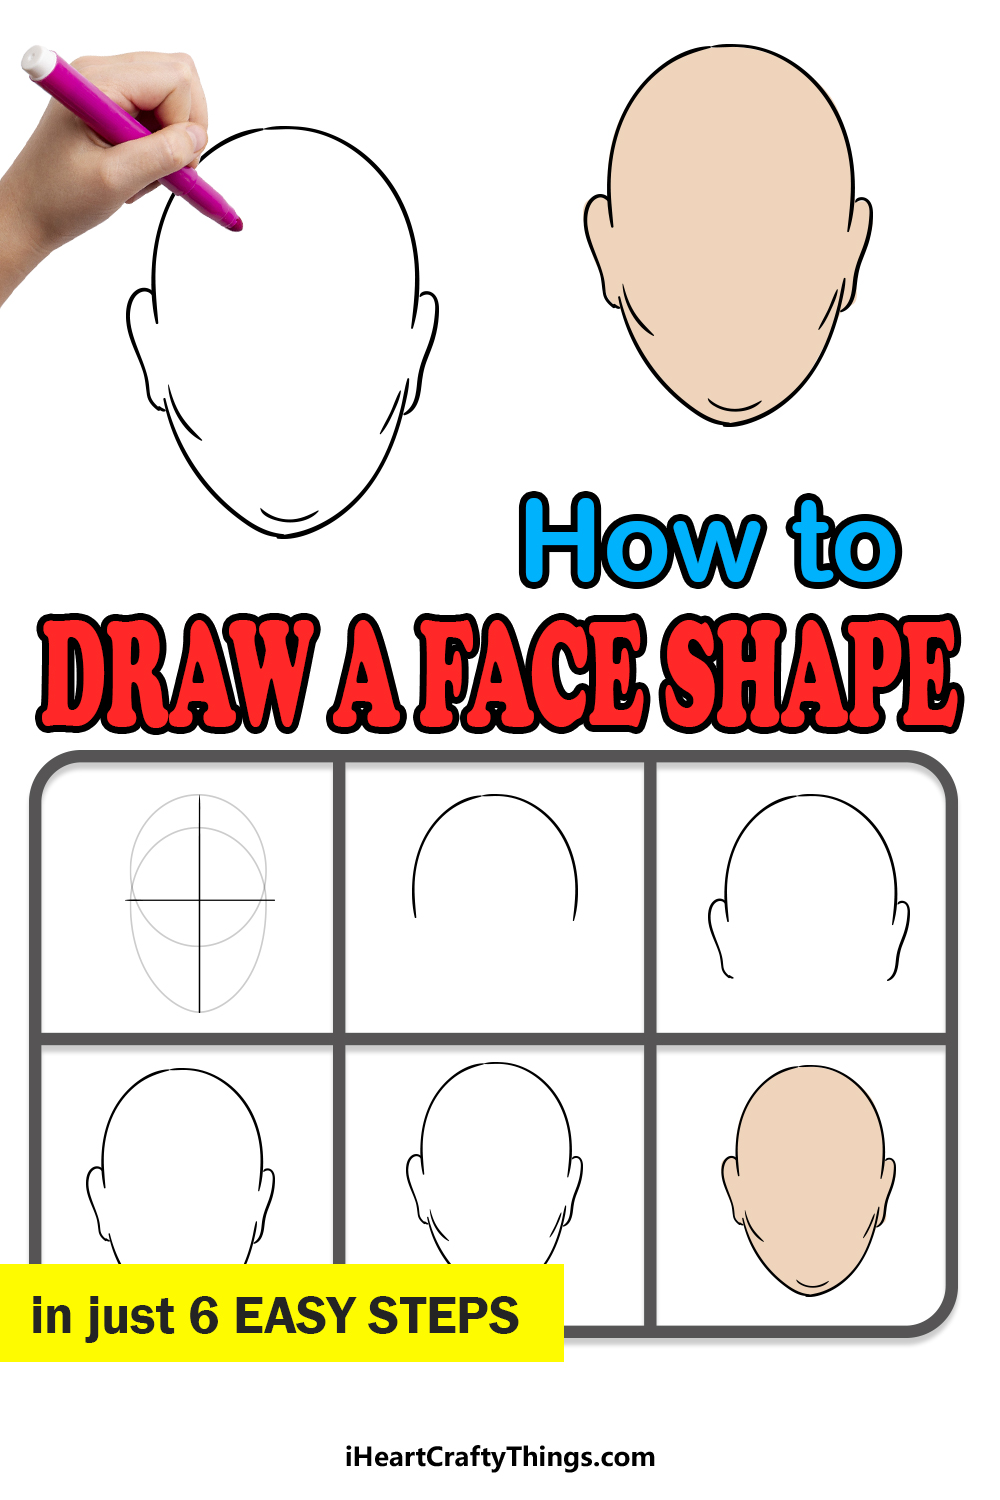 how to draw a face shape in 6 easy steps